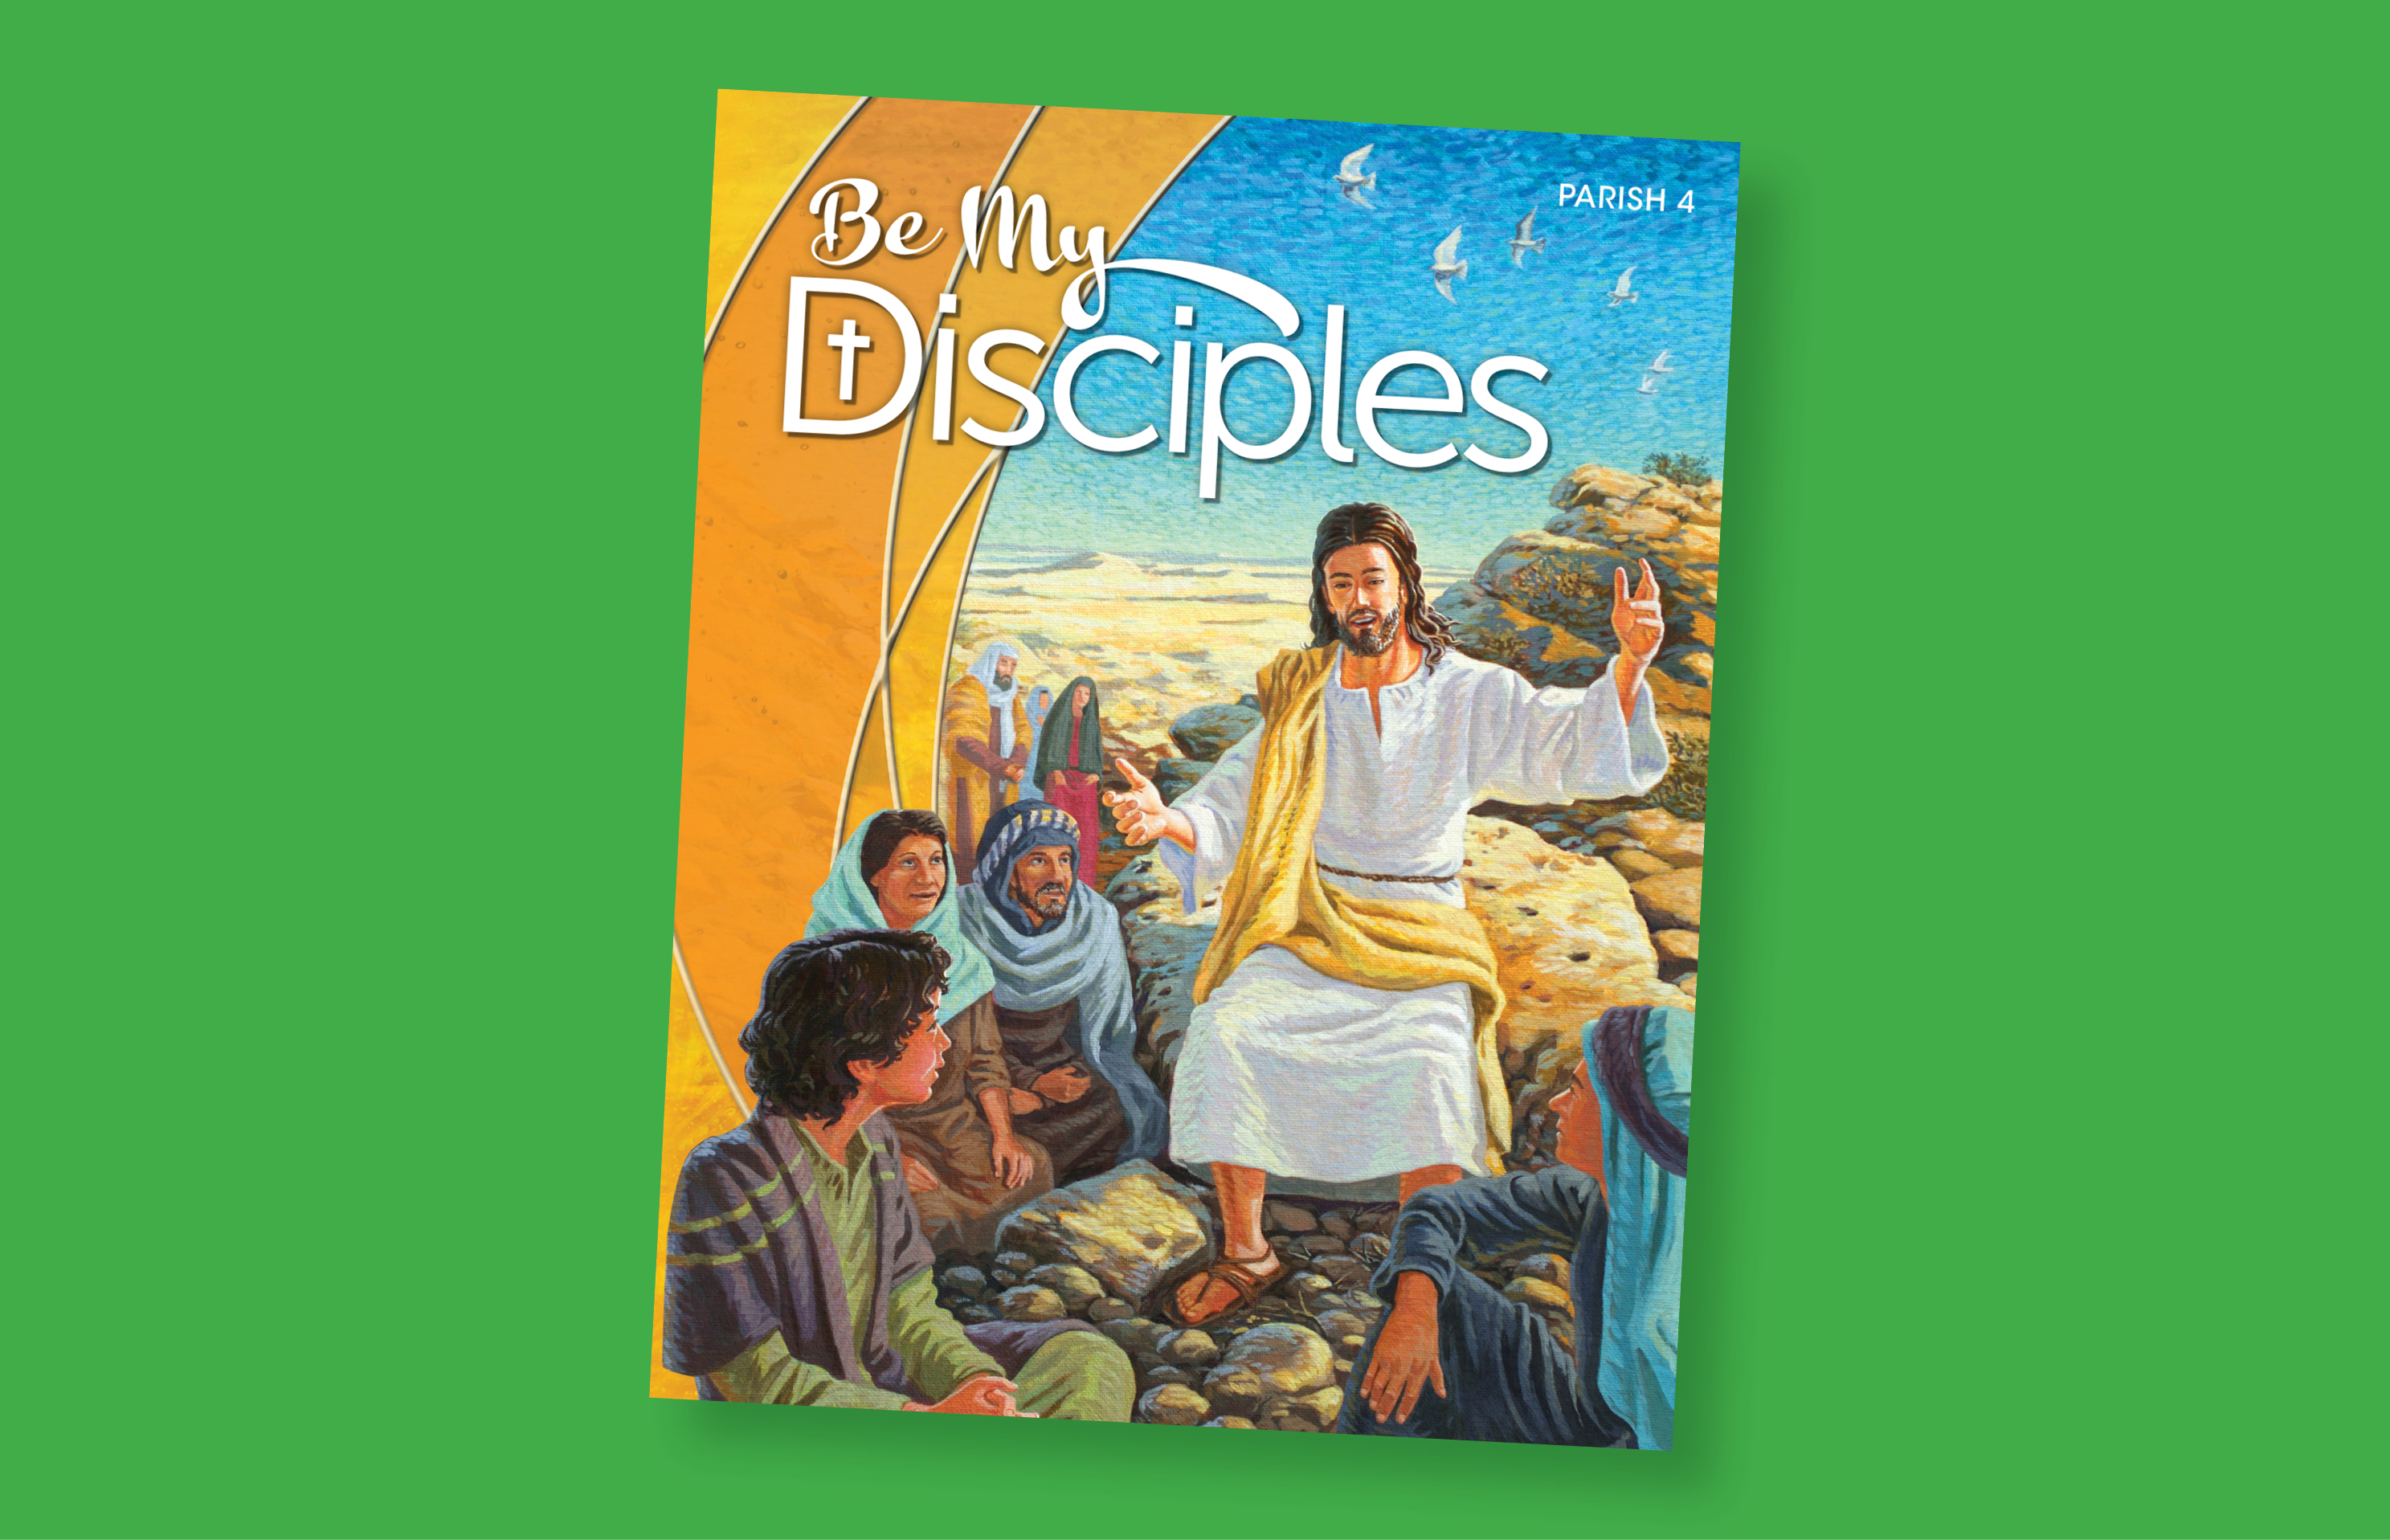 Book cover of Be My Disciples from Benzinger with Jesus sitting on the ground with a group of people